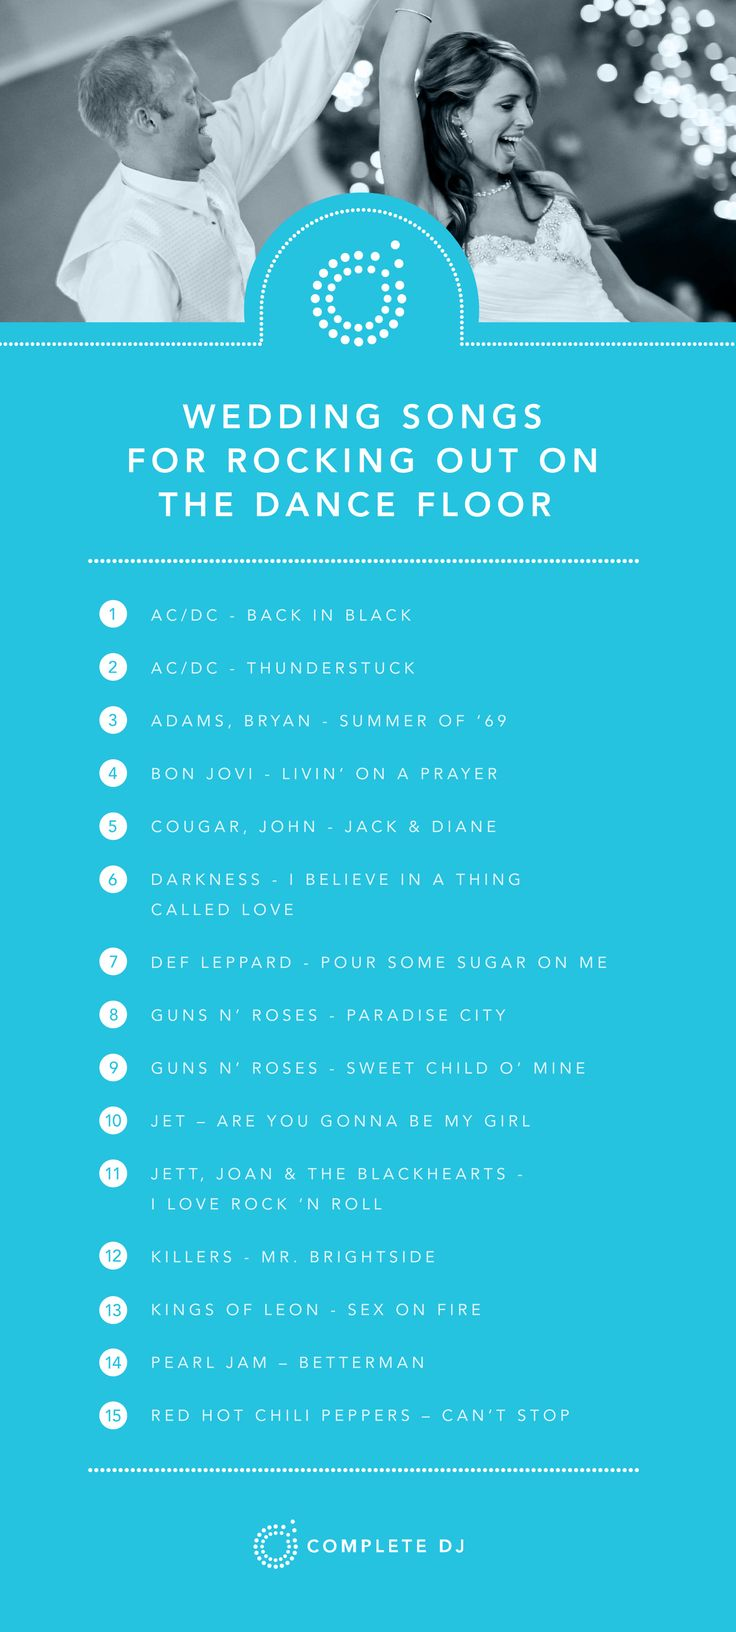 These Songs Are Great On The Dance Floor If Your Crowd Loves To Sing Along And